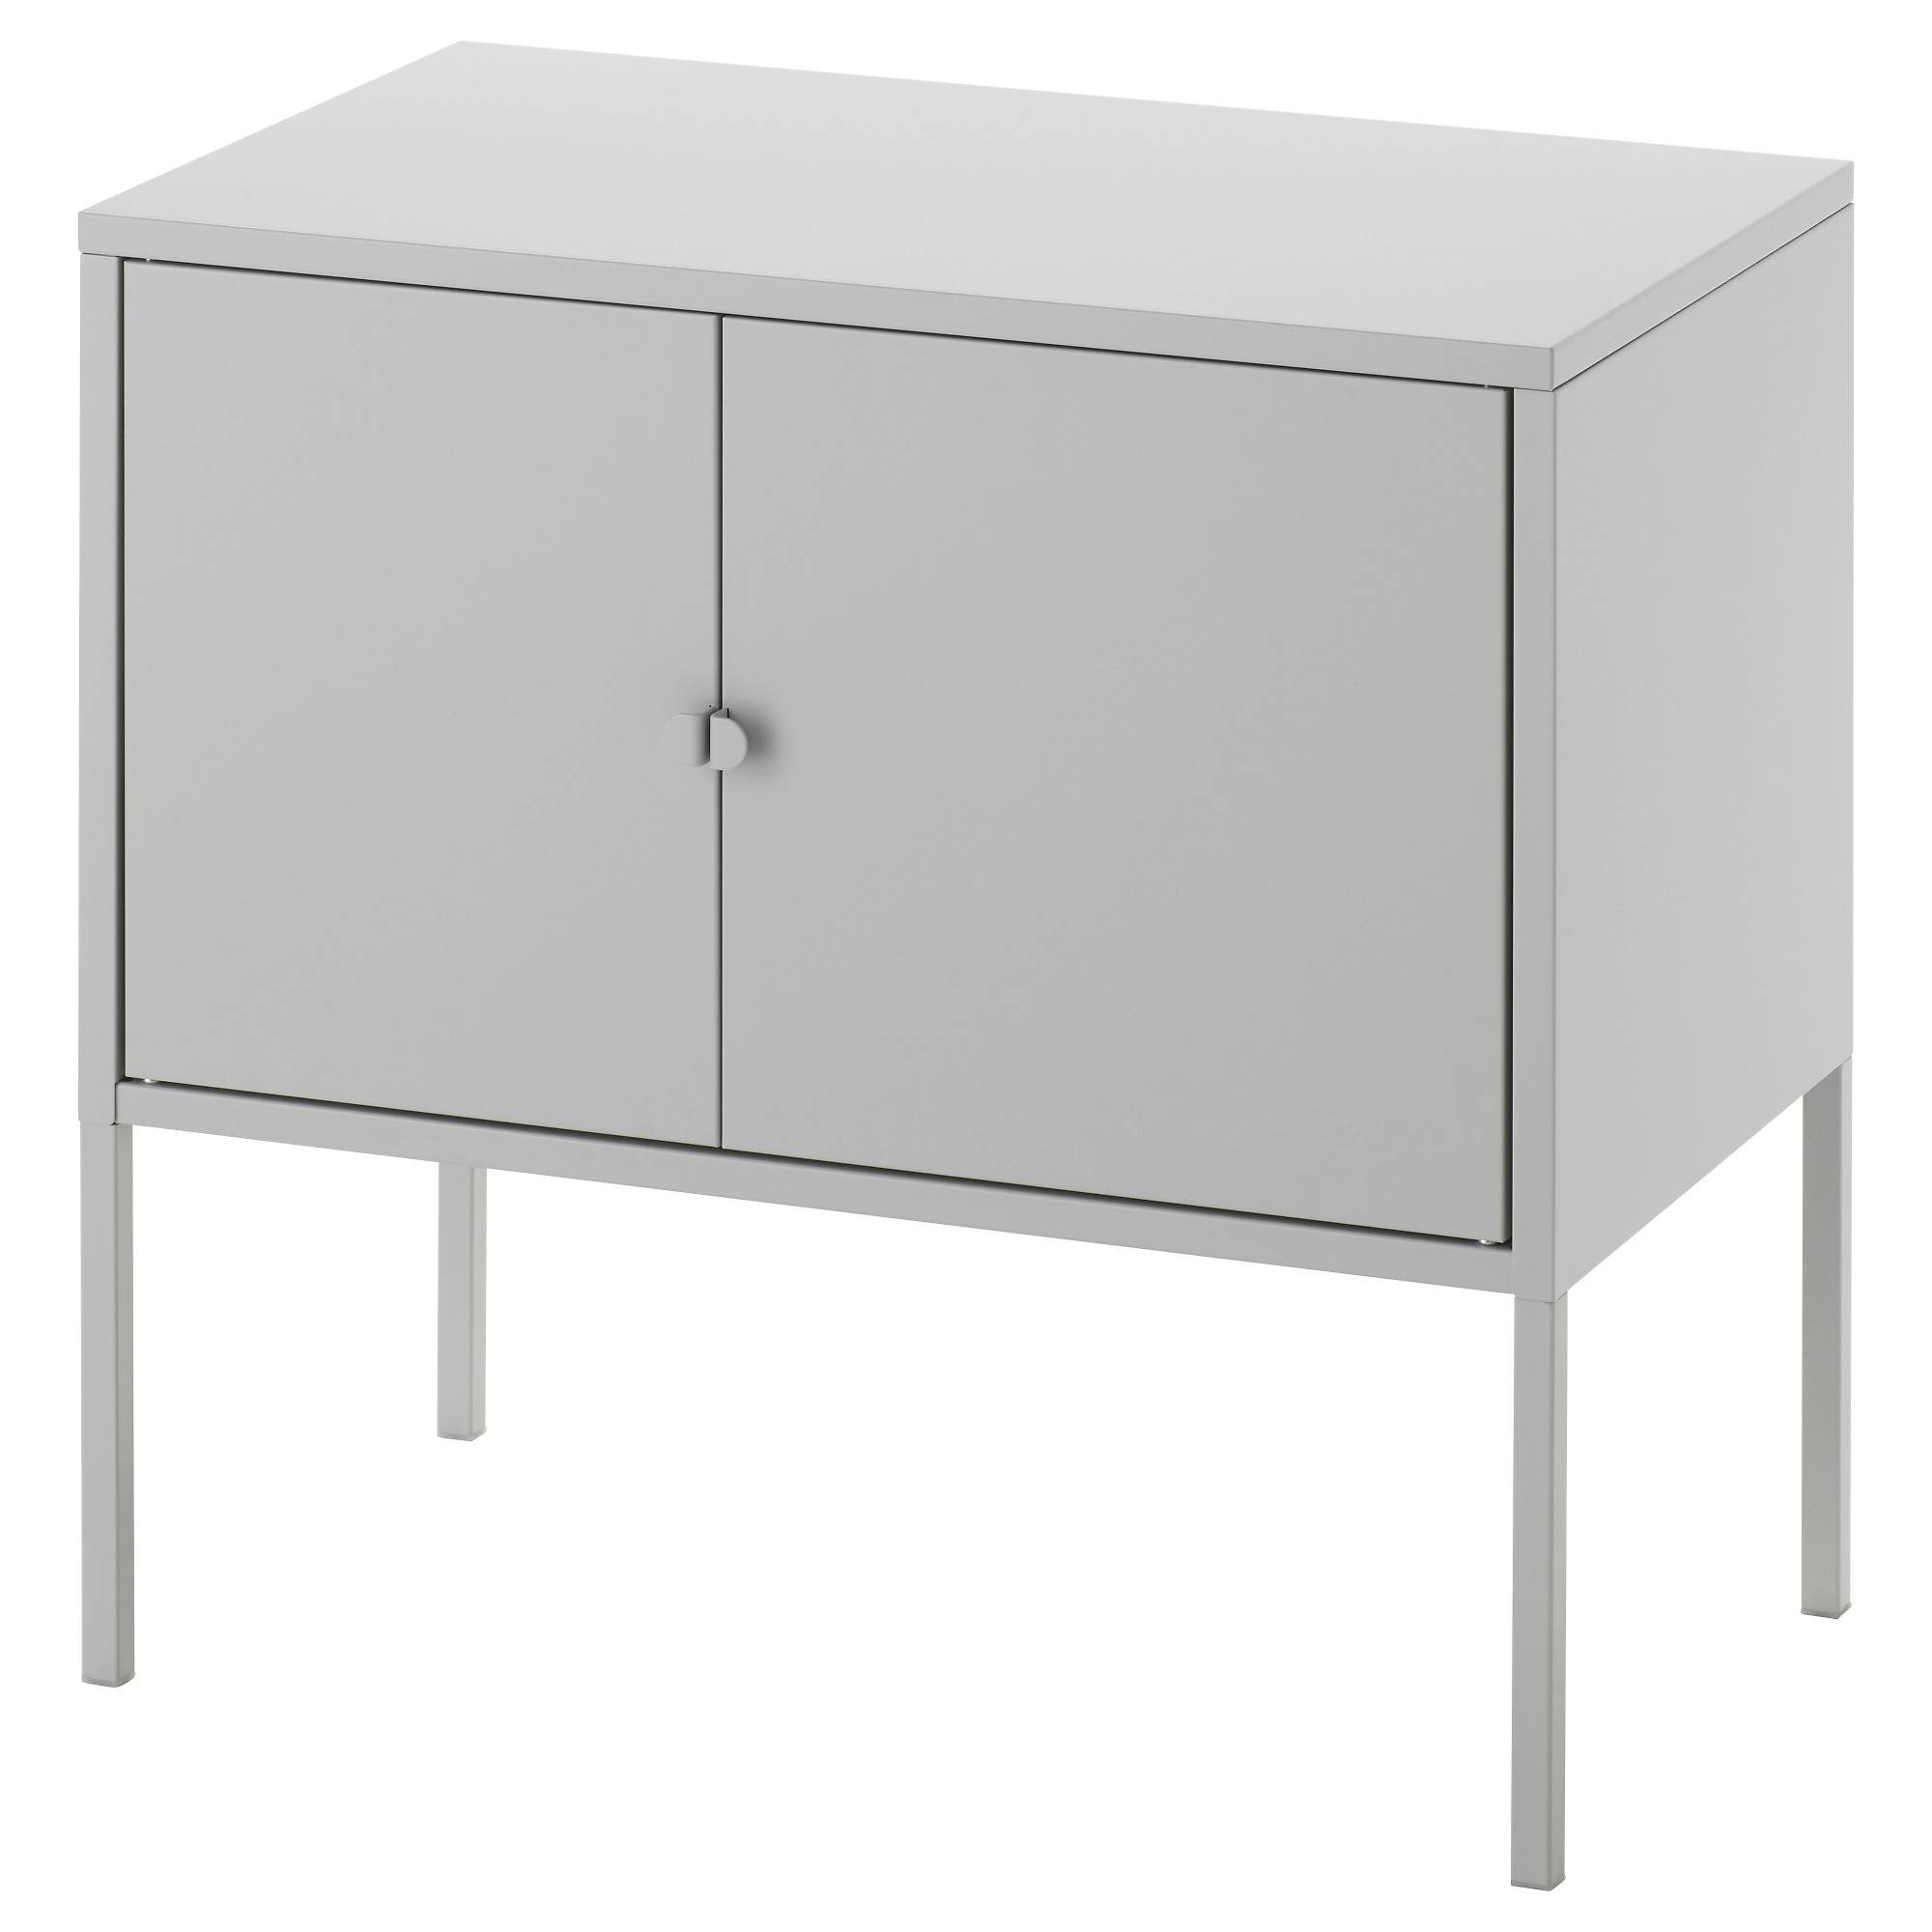 Lixhult Cabinet Metal/grey 60x35 Cm – Ikea Within Metal Sideboard Furniture (View 9 of 15)